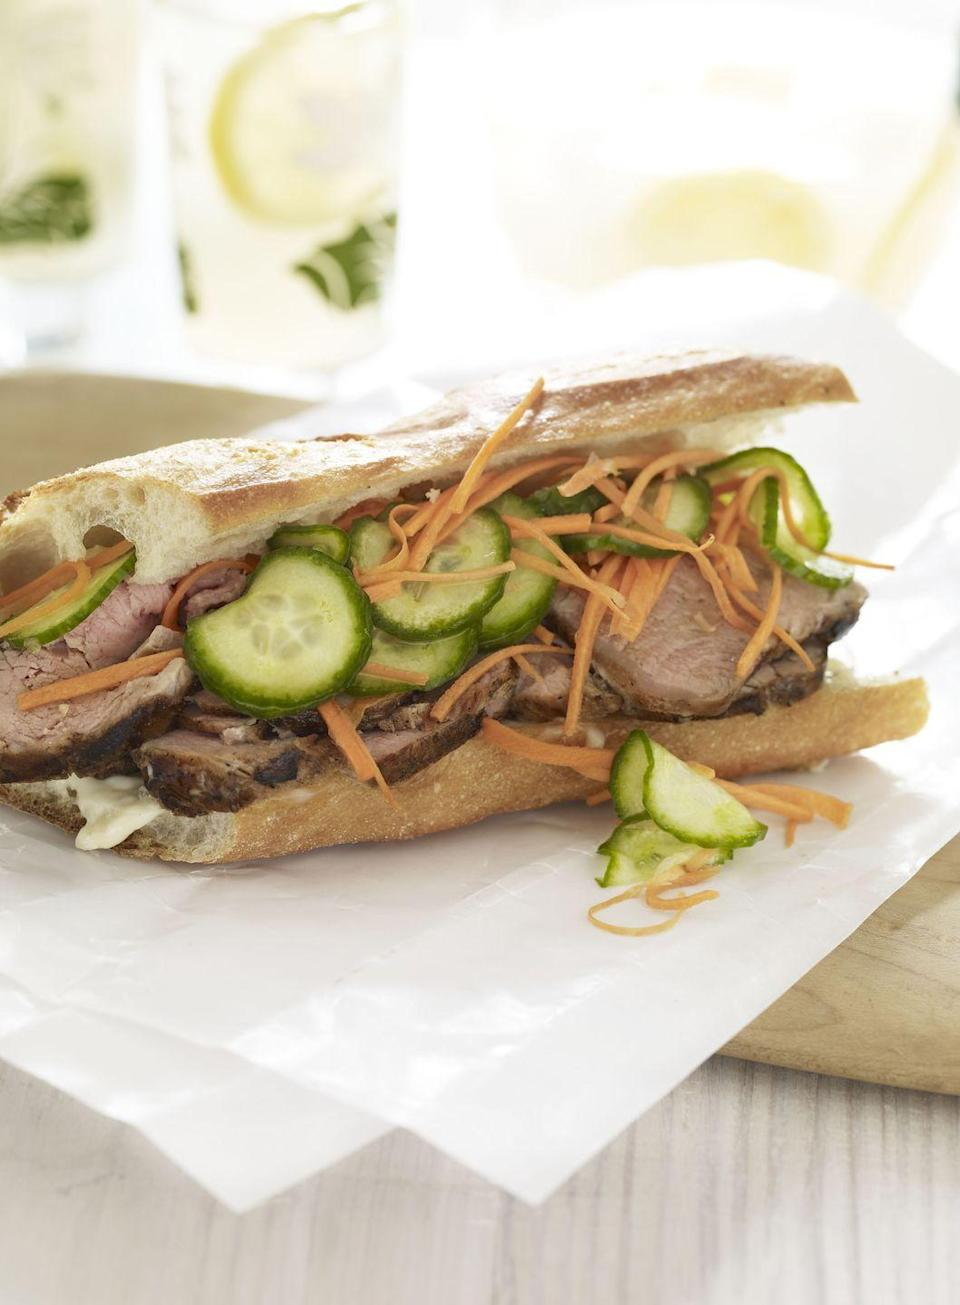 "<p>This sandwich borrows the bold flavors and fillings of the banh mi, the trendy Vietnamese street-stall sub.</p><p><a href=""https://www.goodhousekeeping.com/food-recipes/a10311/lemongrass-pork-sandwich-recipe-ghk0810/"" rel=""nofollow noopener"" target=""_blank"" data-ylk=""slk:Get the recipe for Lemongrass Pork Sandwich »"" class=""link rapid-noclick-resp""><em>Get the recipe for Lemongrass Pork Sandwich »</em></a></p>"